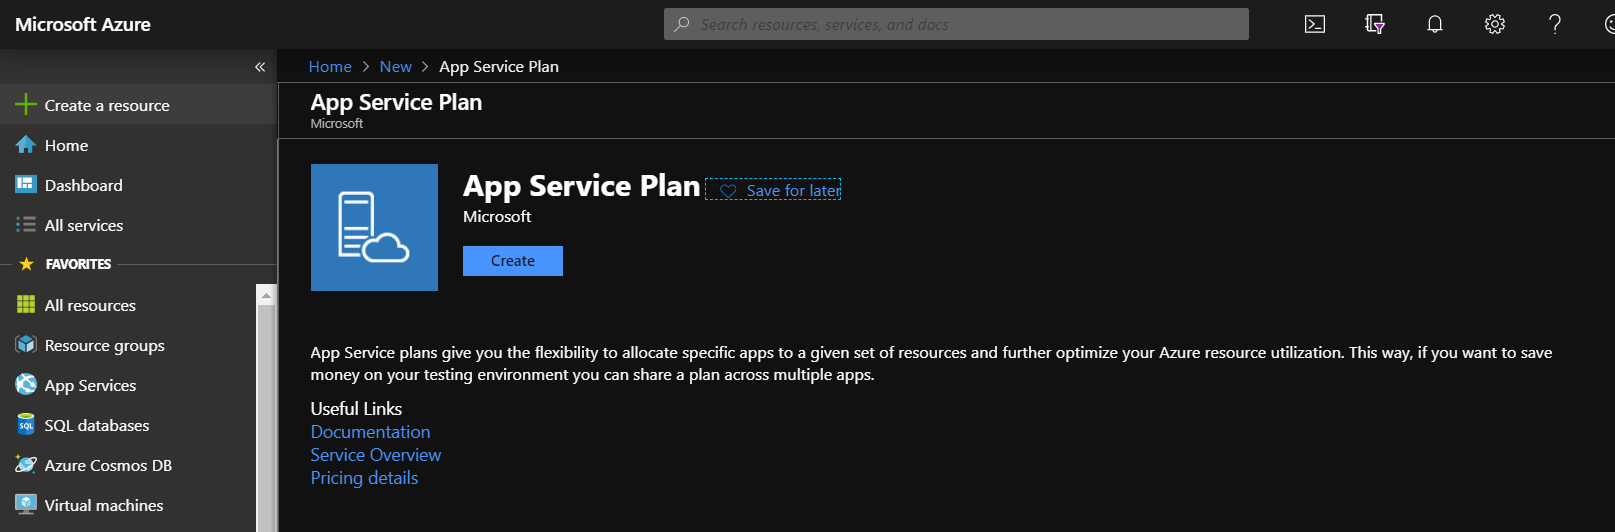 Creating an app service plan in Azure.